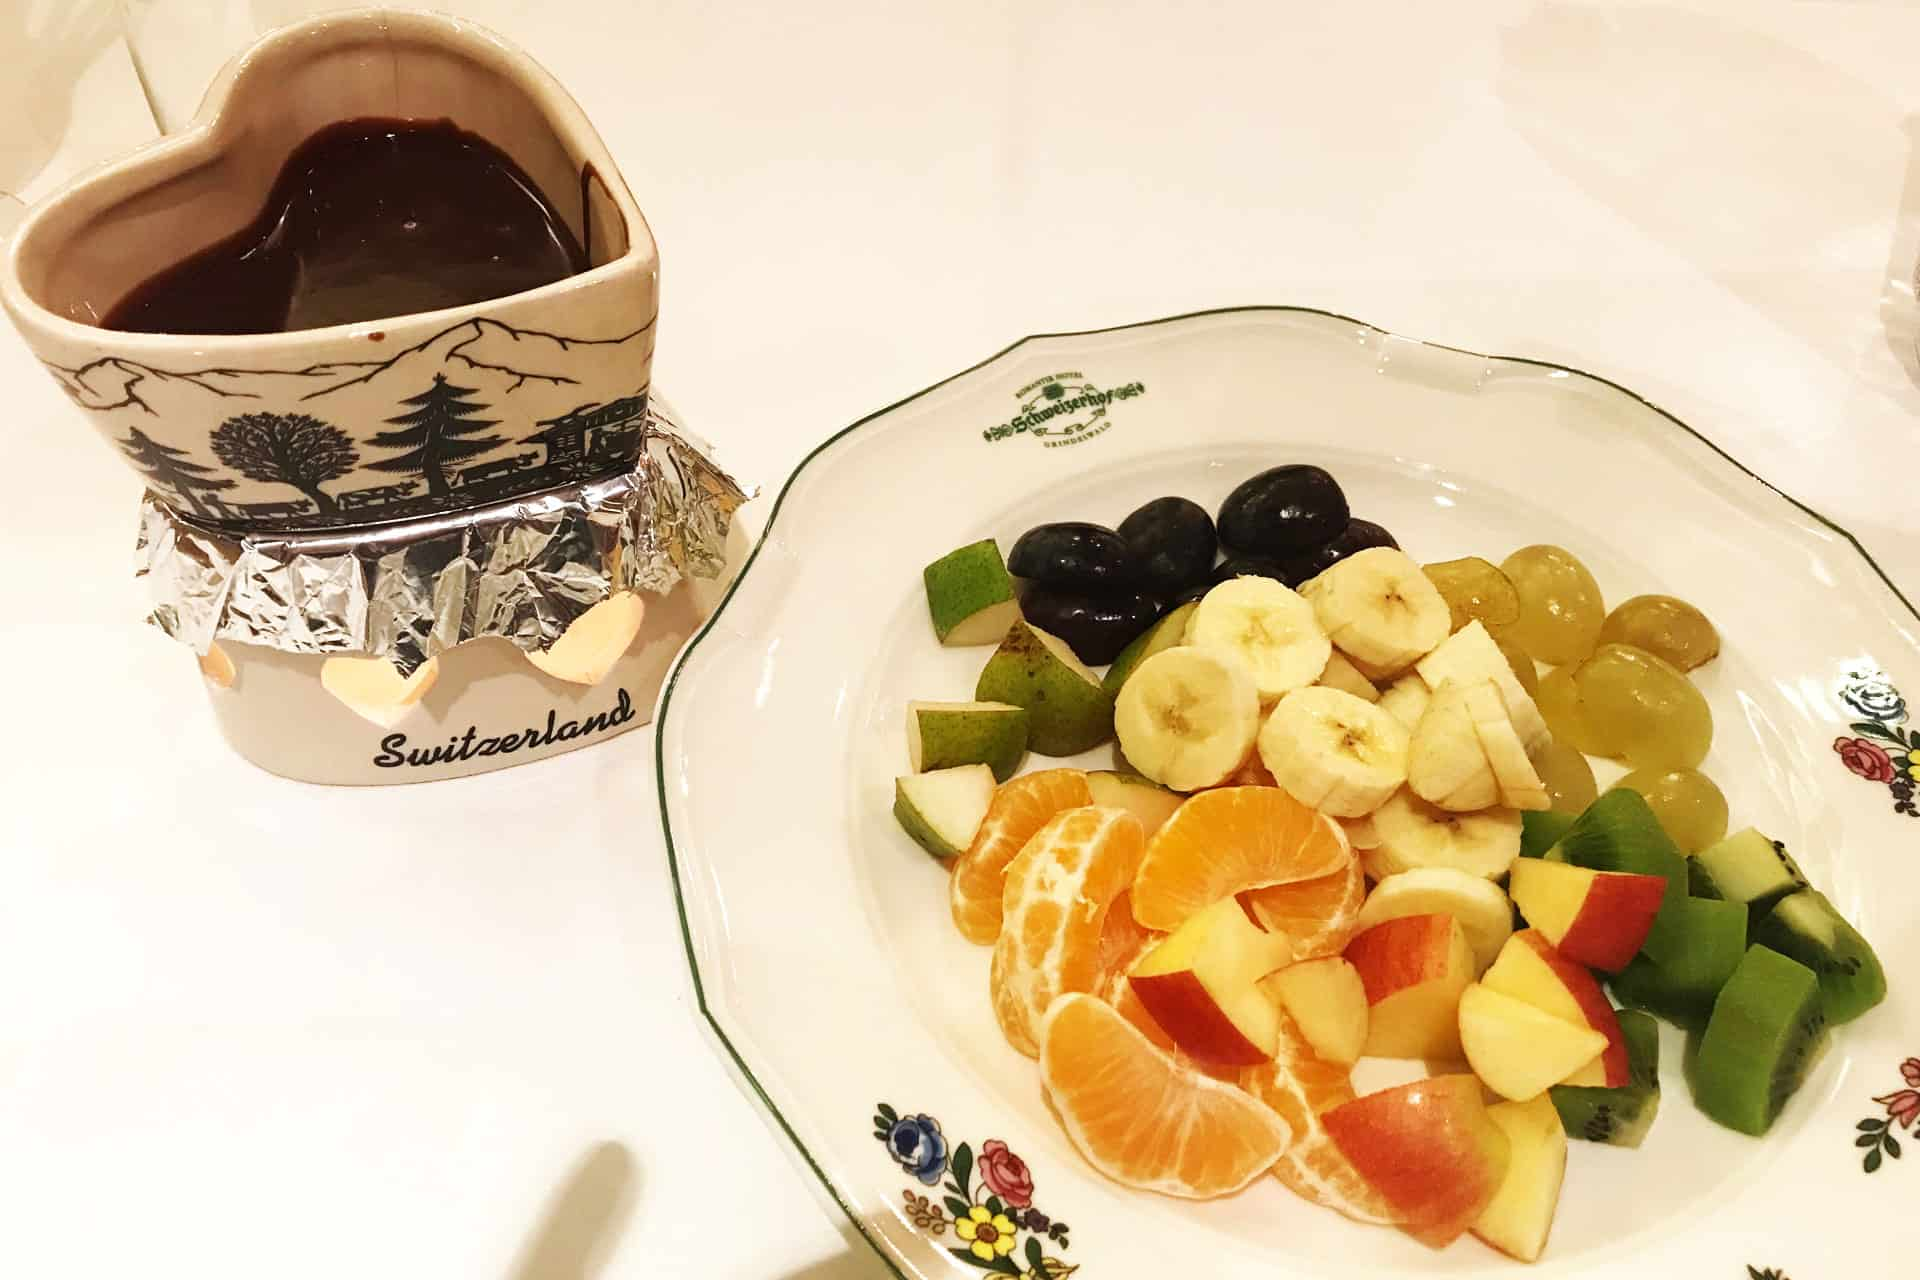 Chocolate Fondue with a lovely heart shape Pot.To up the romance level!